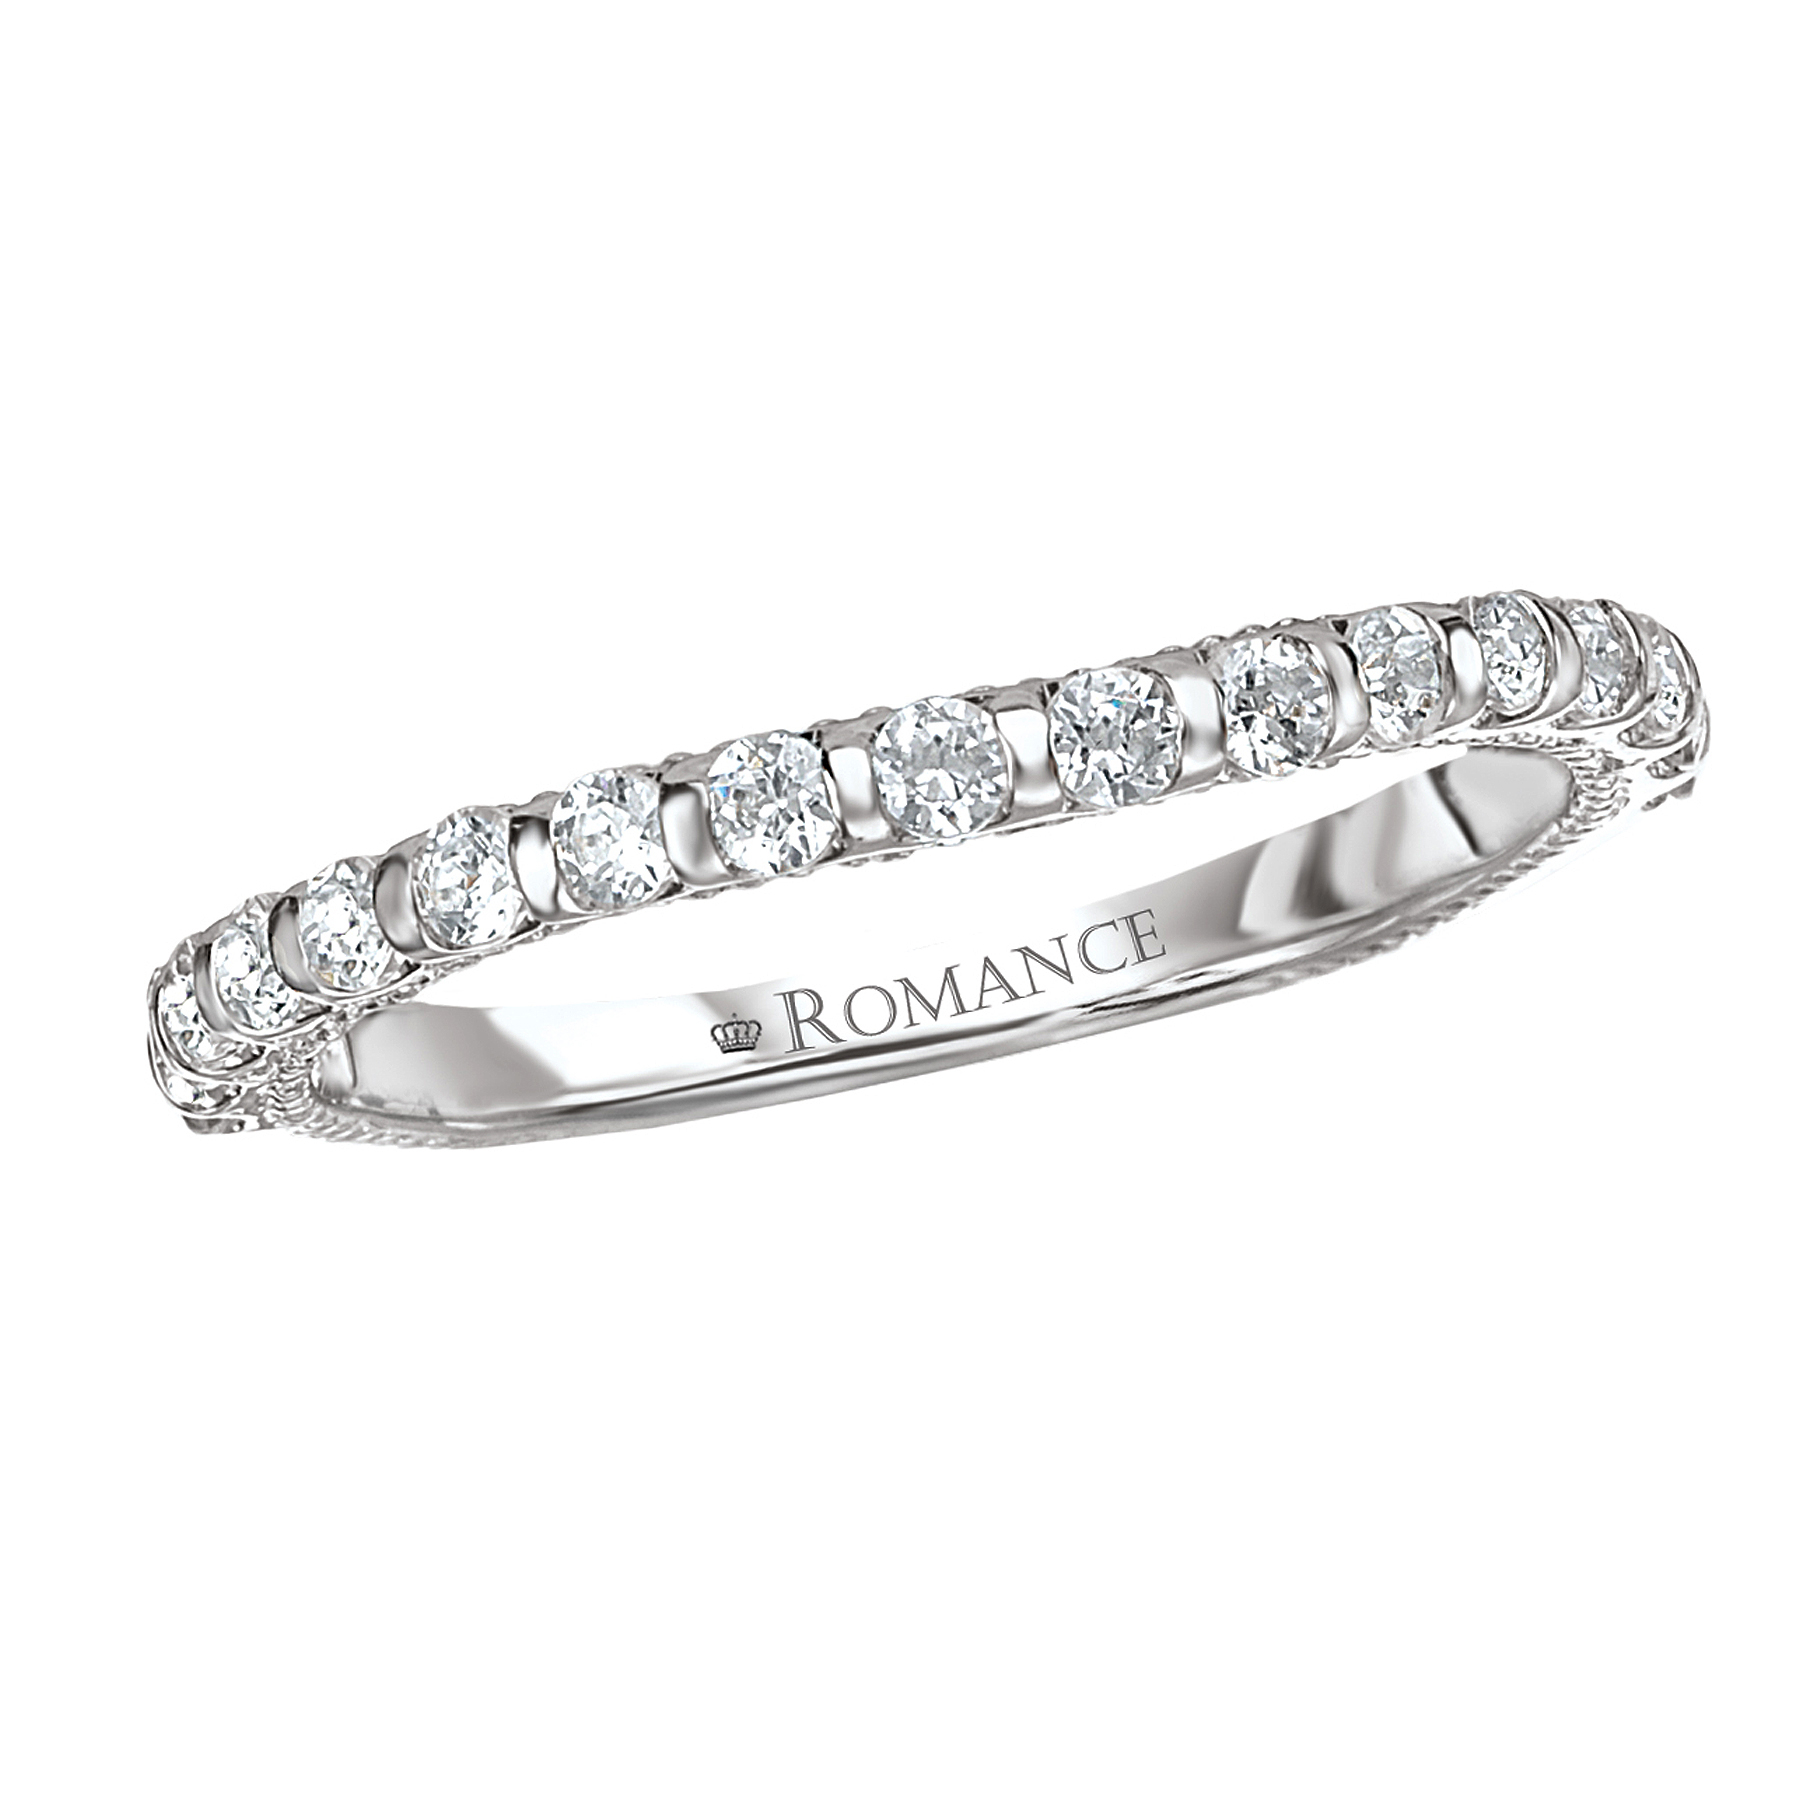 Romance Wedding Bands 117322-W product image